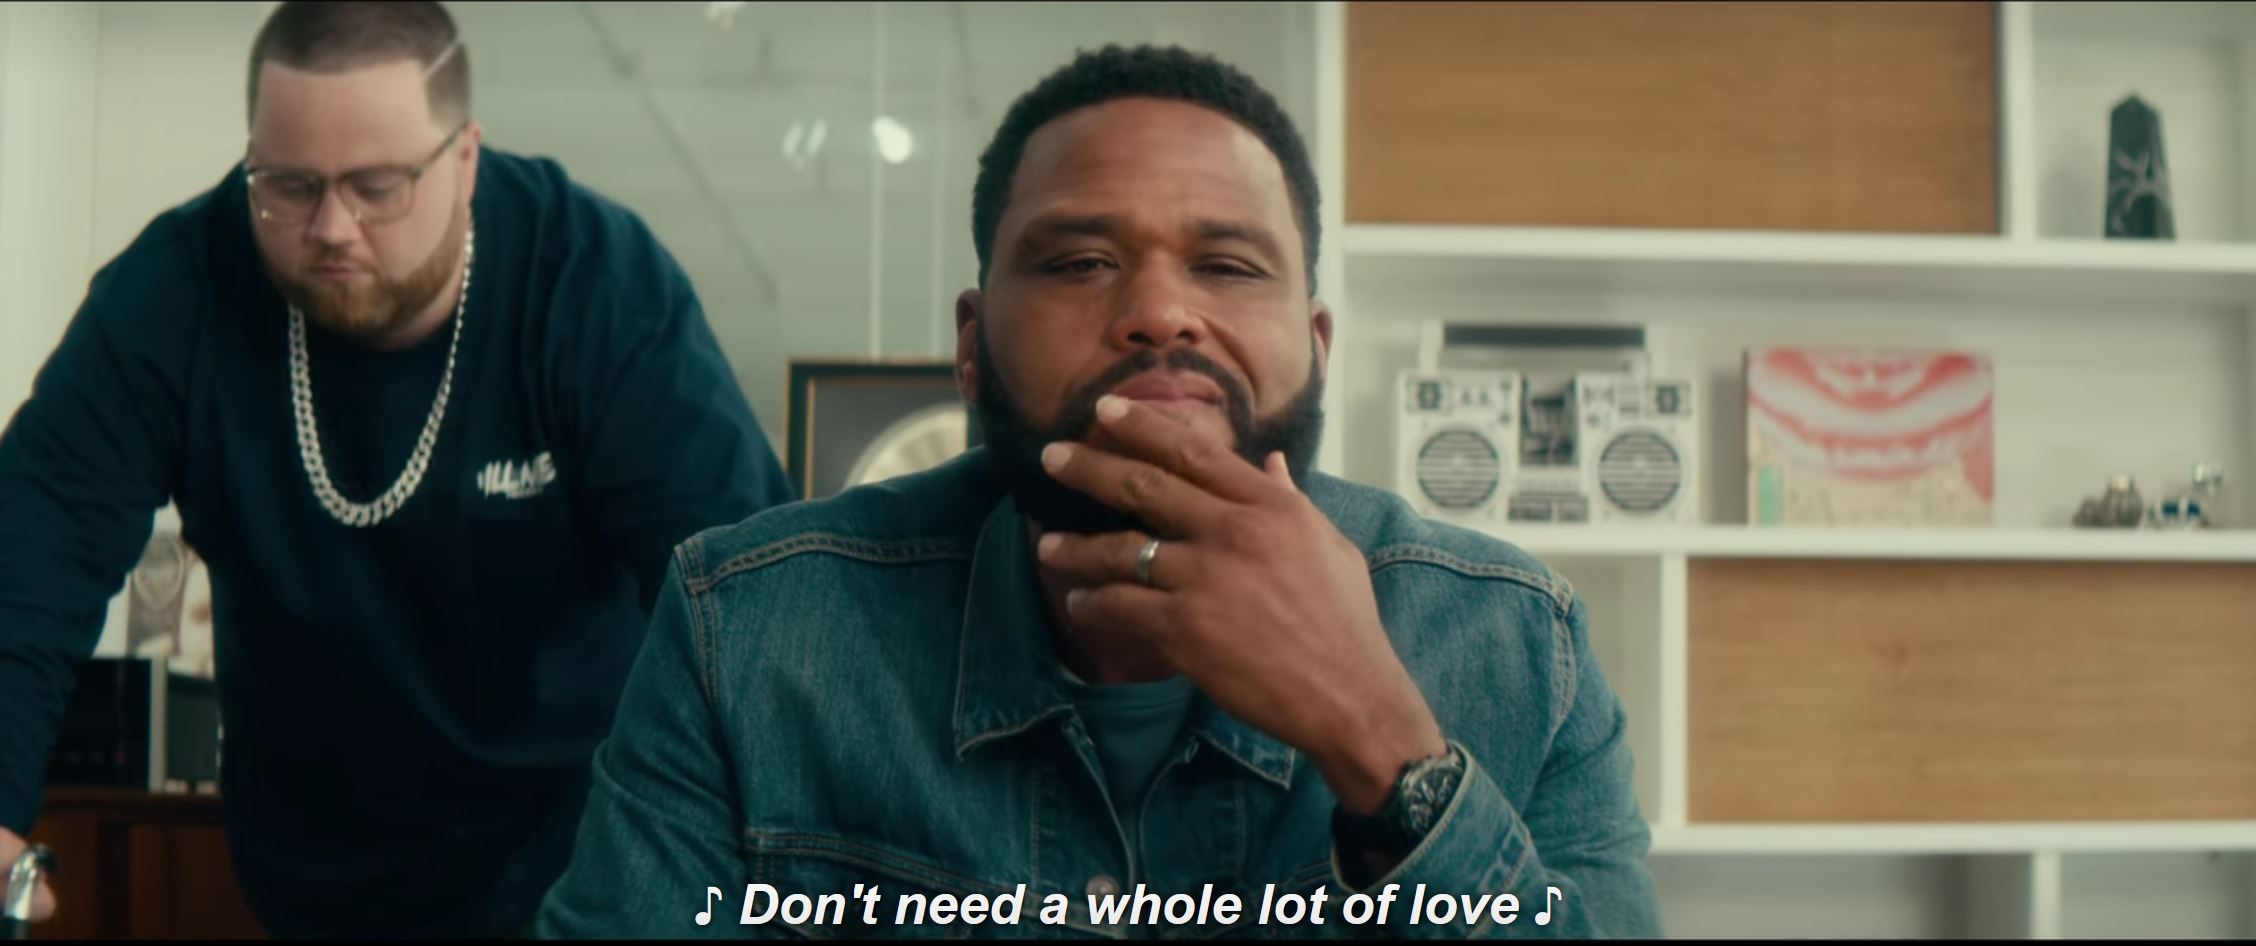 image of Romelo (Anthony Anderson) sitting stroking beard while Terrence (Paul Walter Hauser) stands behind him